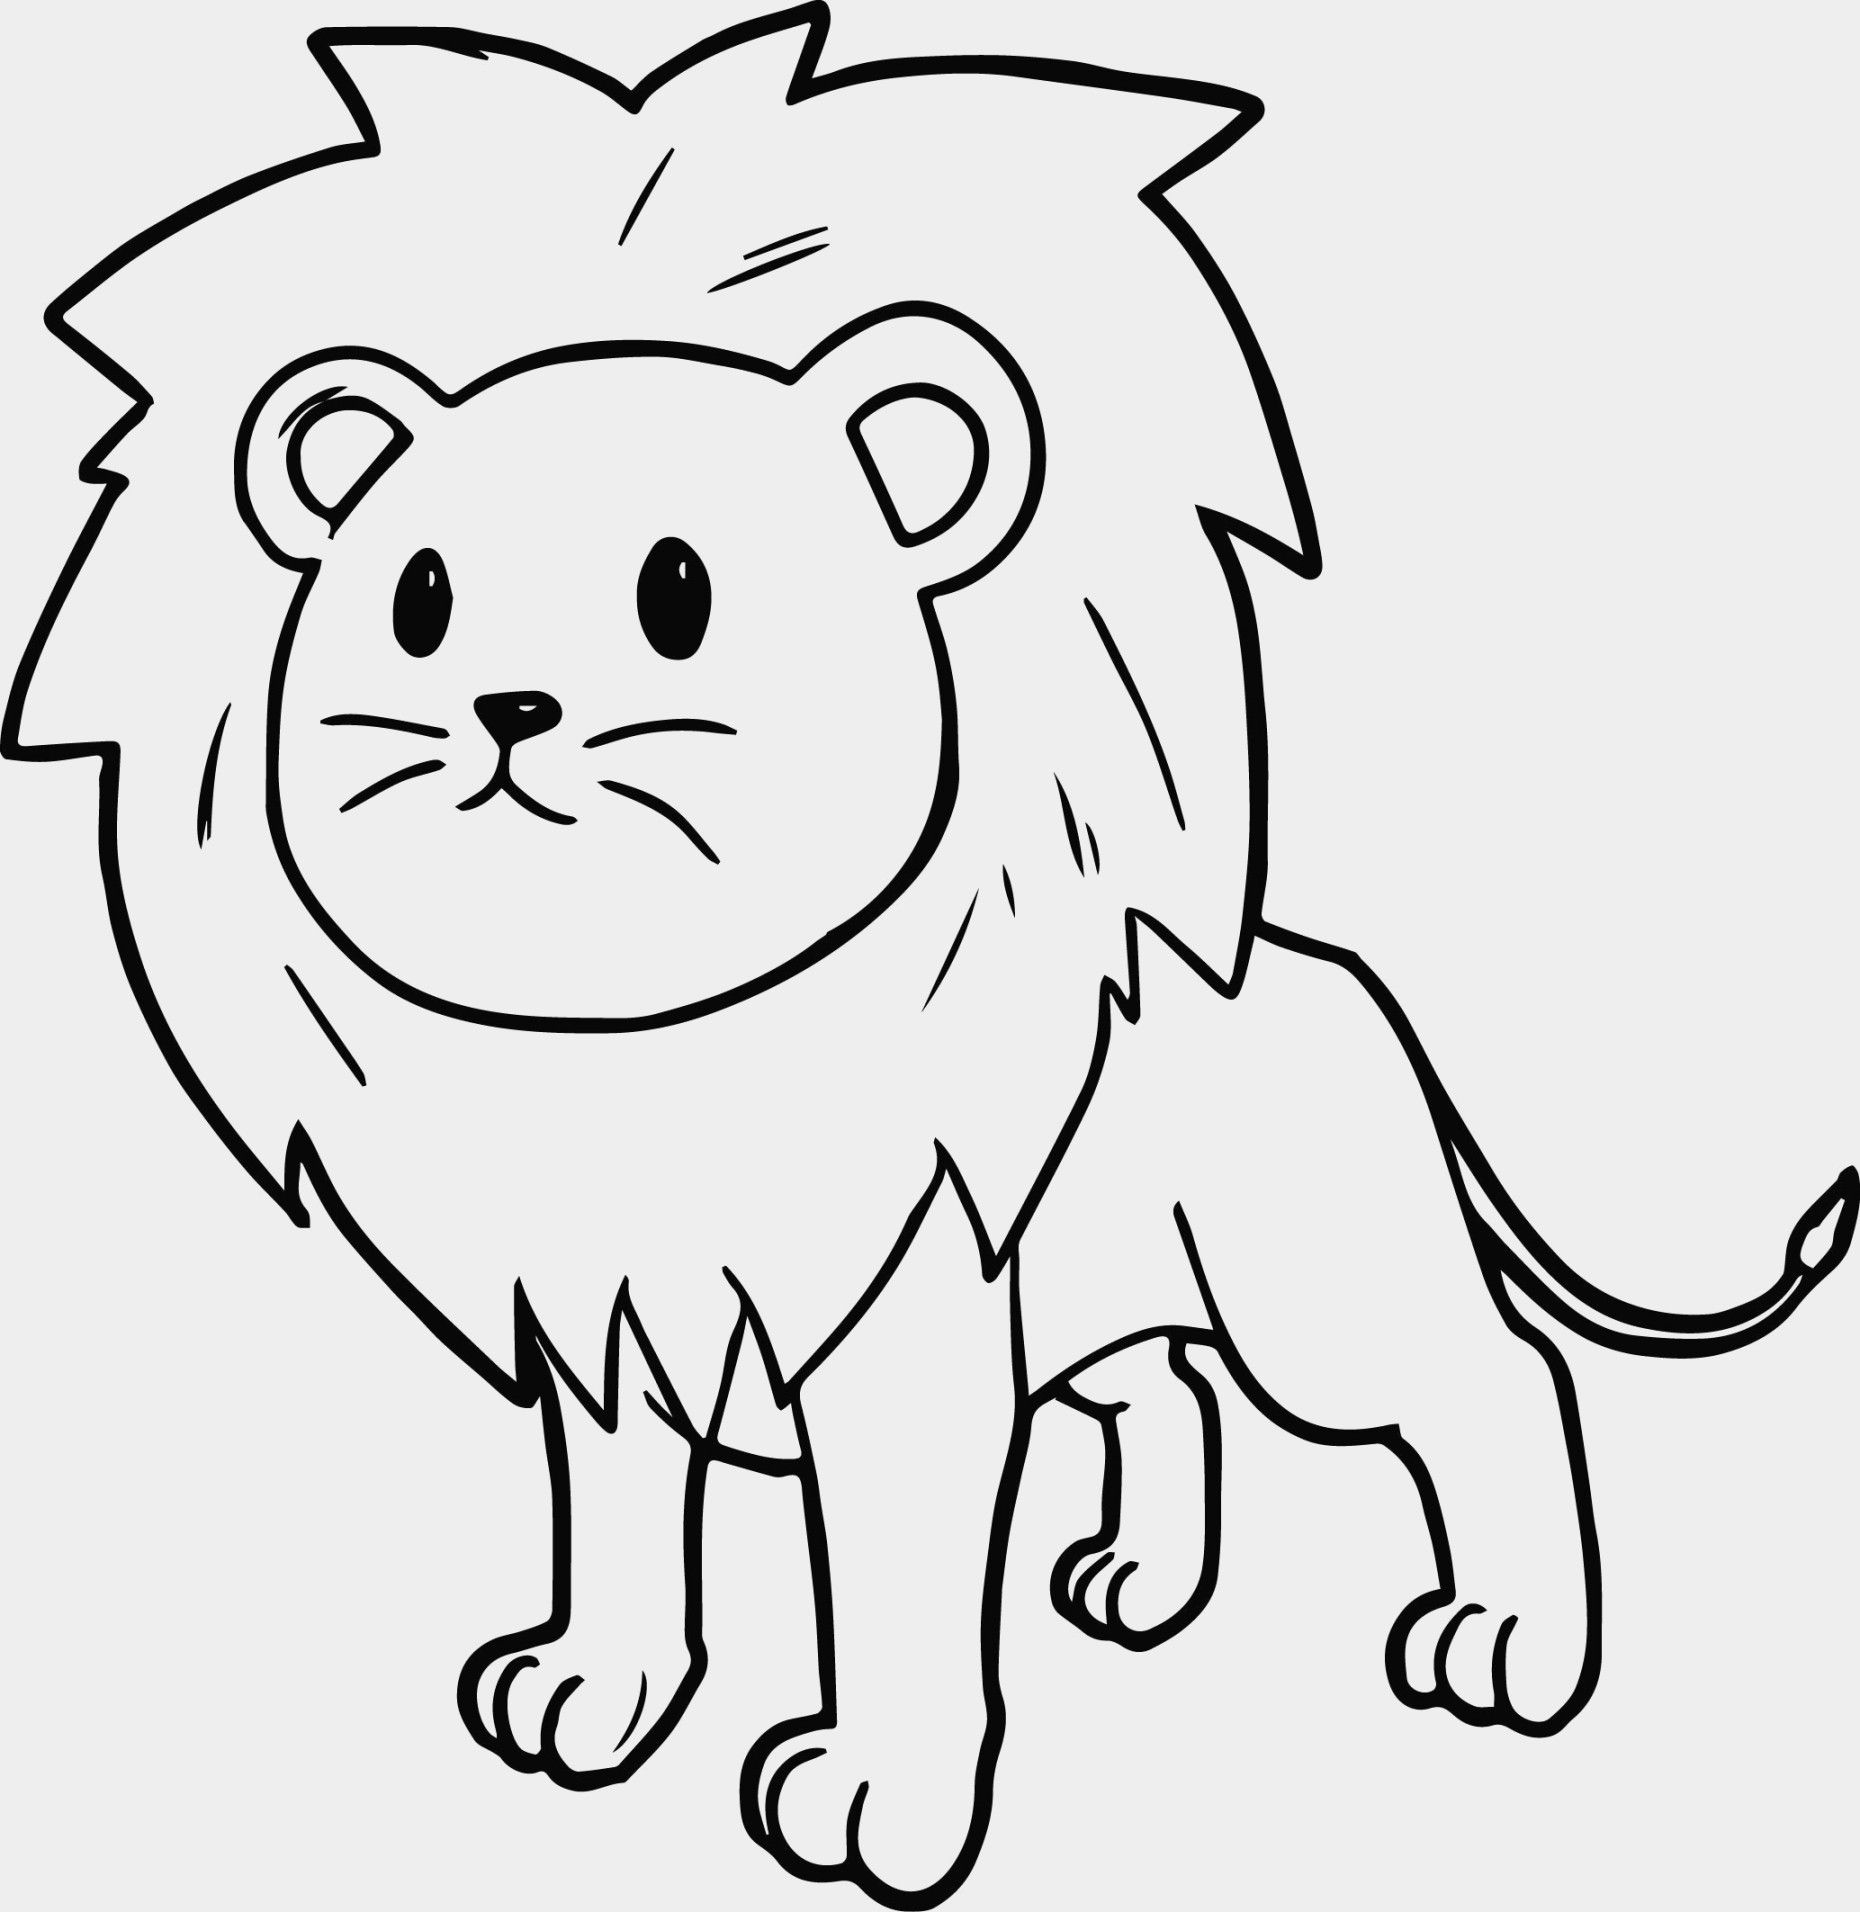 coloring pages for kids lion lion to print for free lion kids coloring pages pages for lion kids coloring